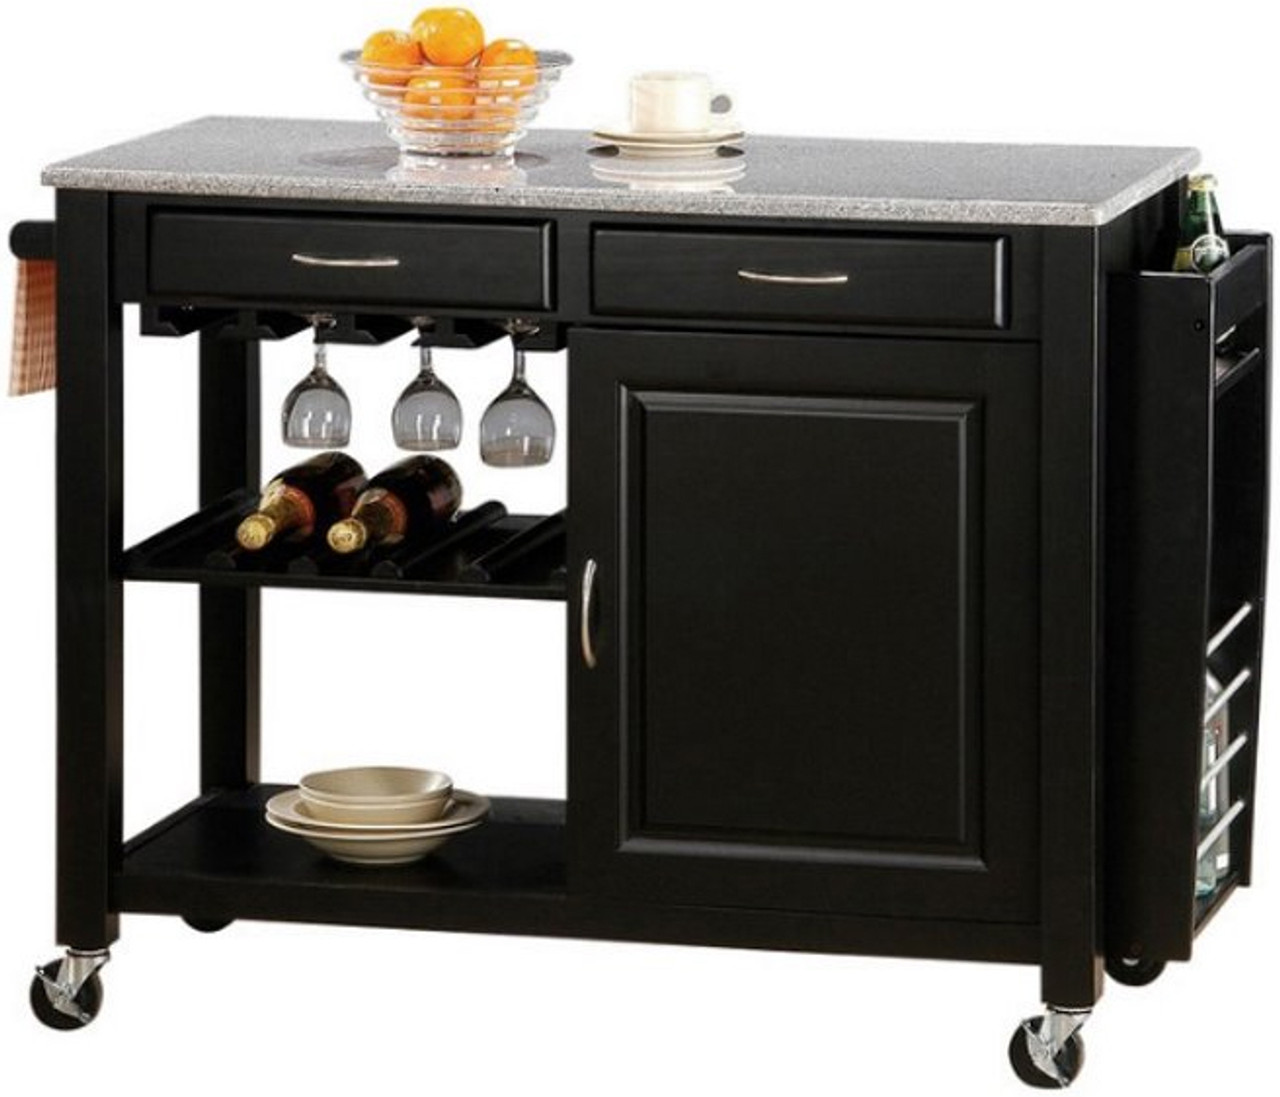 Krenton Granite Top Kitchen Island Cart